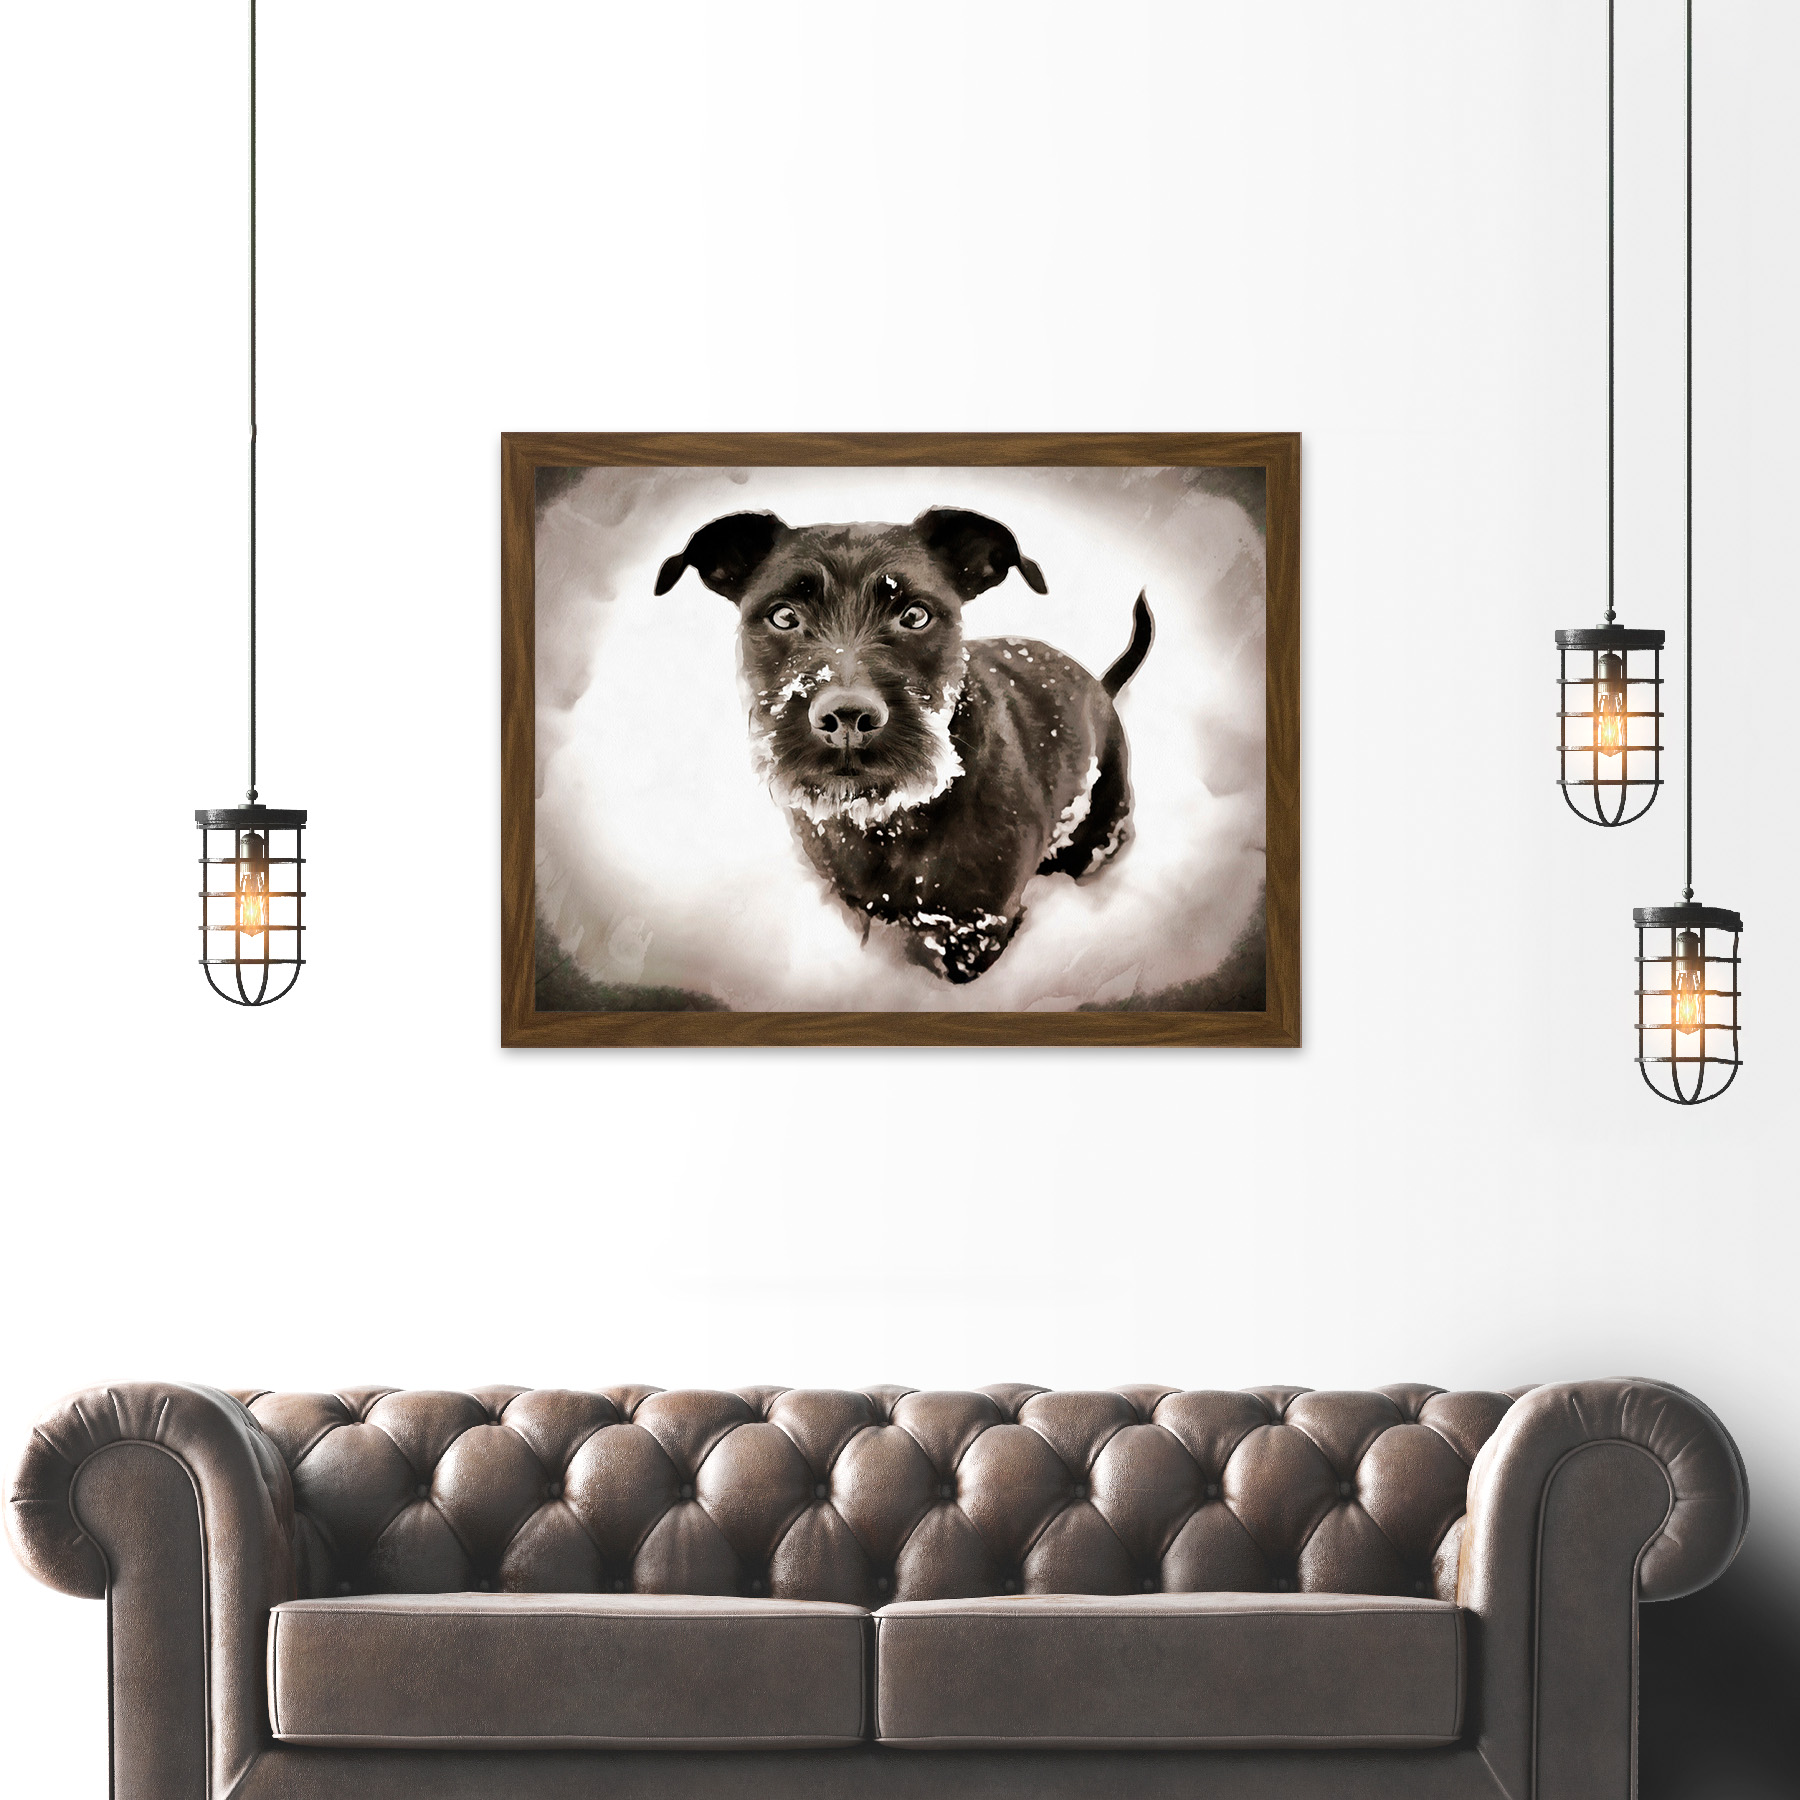 Surprising Details About Photo Painting Cute Puppy Dog Winter Snow Large Framed Art Print Cjindustries Chair Design For Home Cjindustriesco